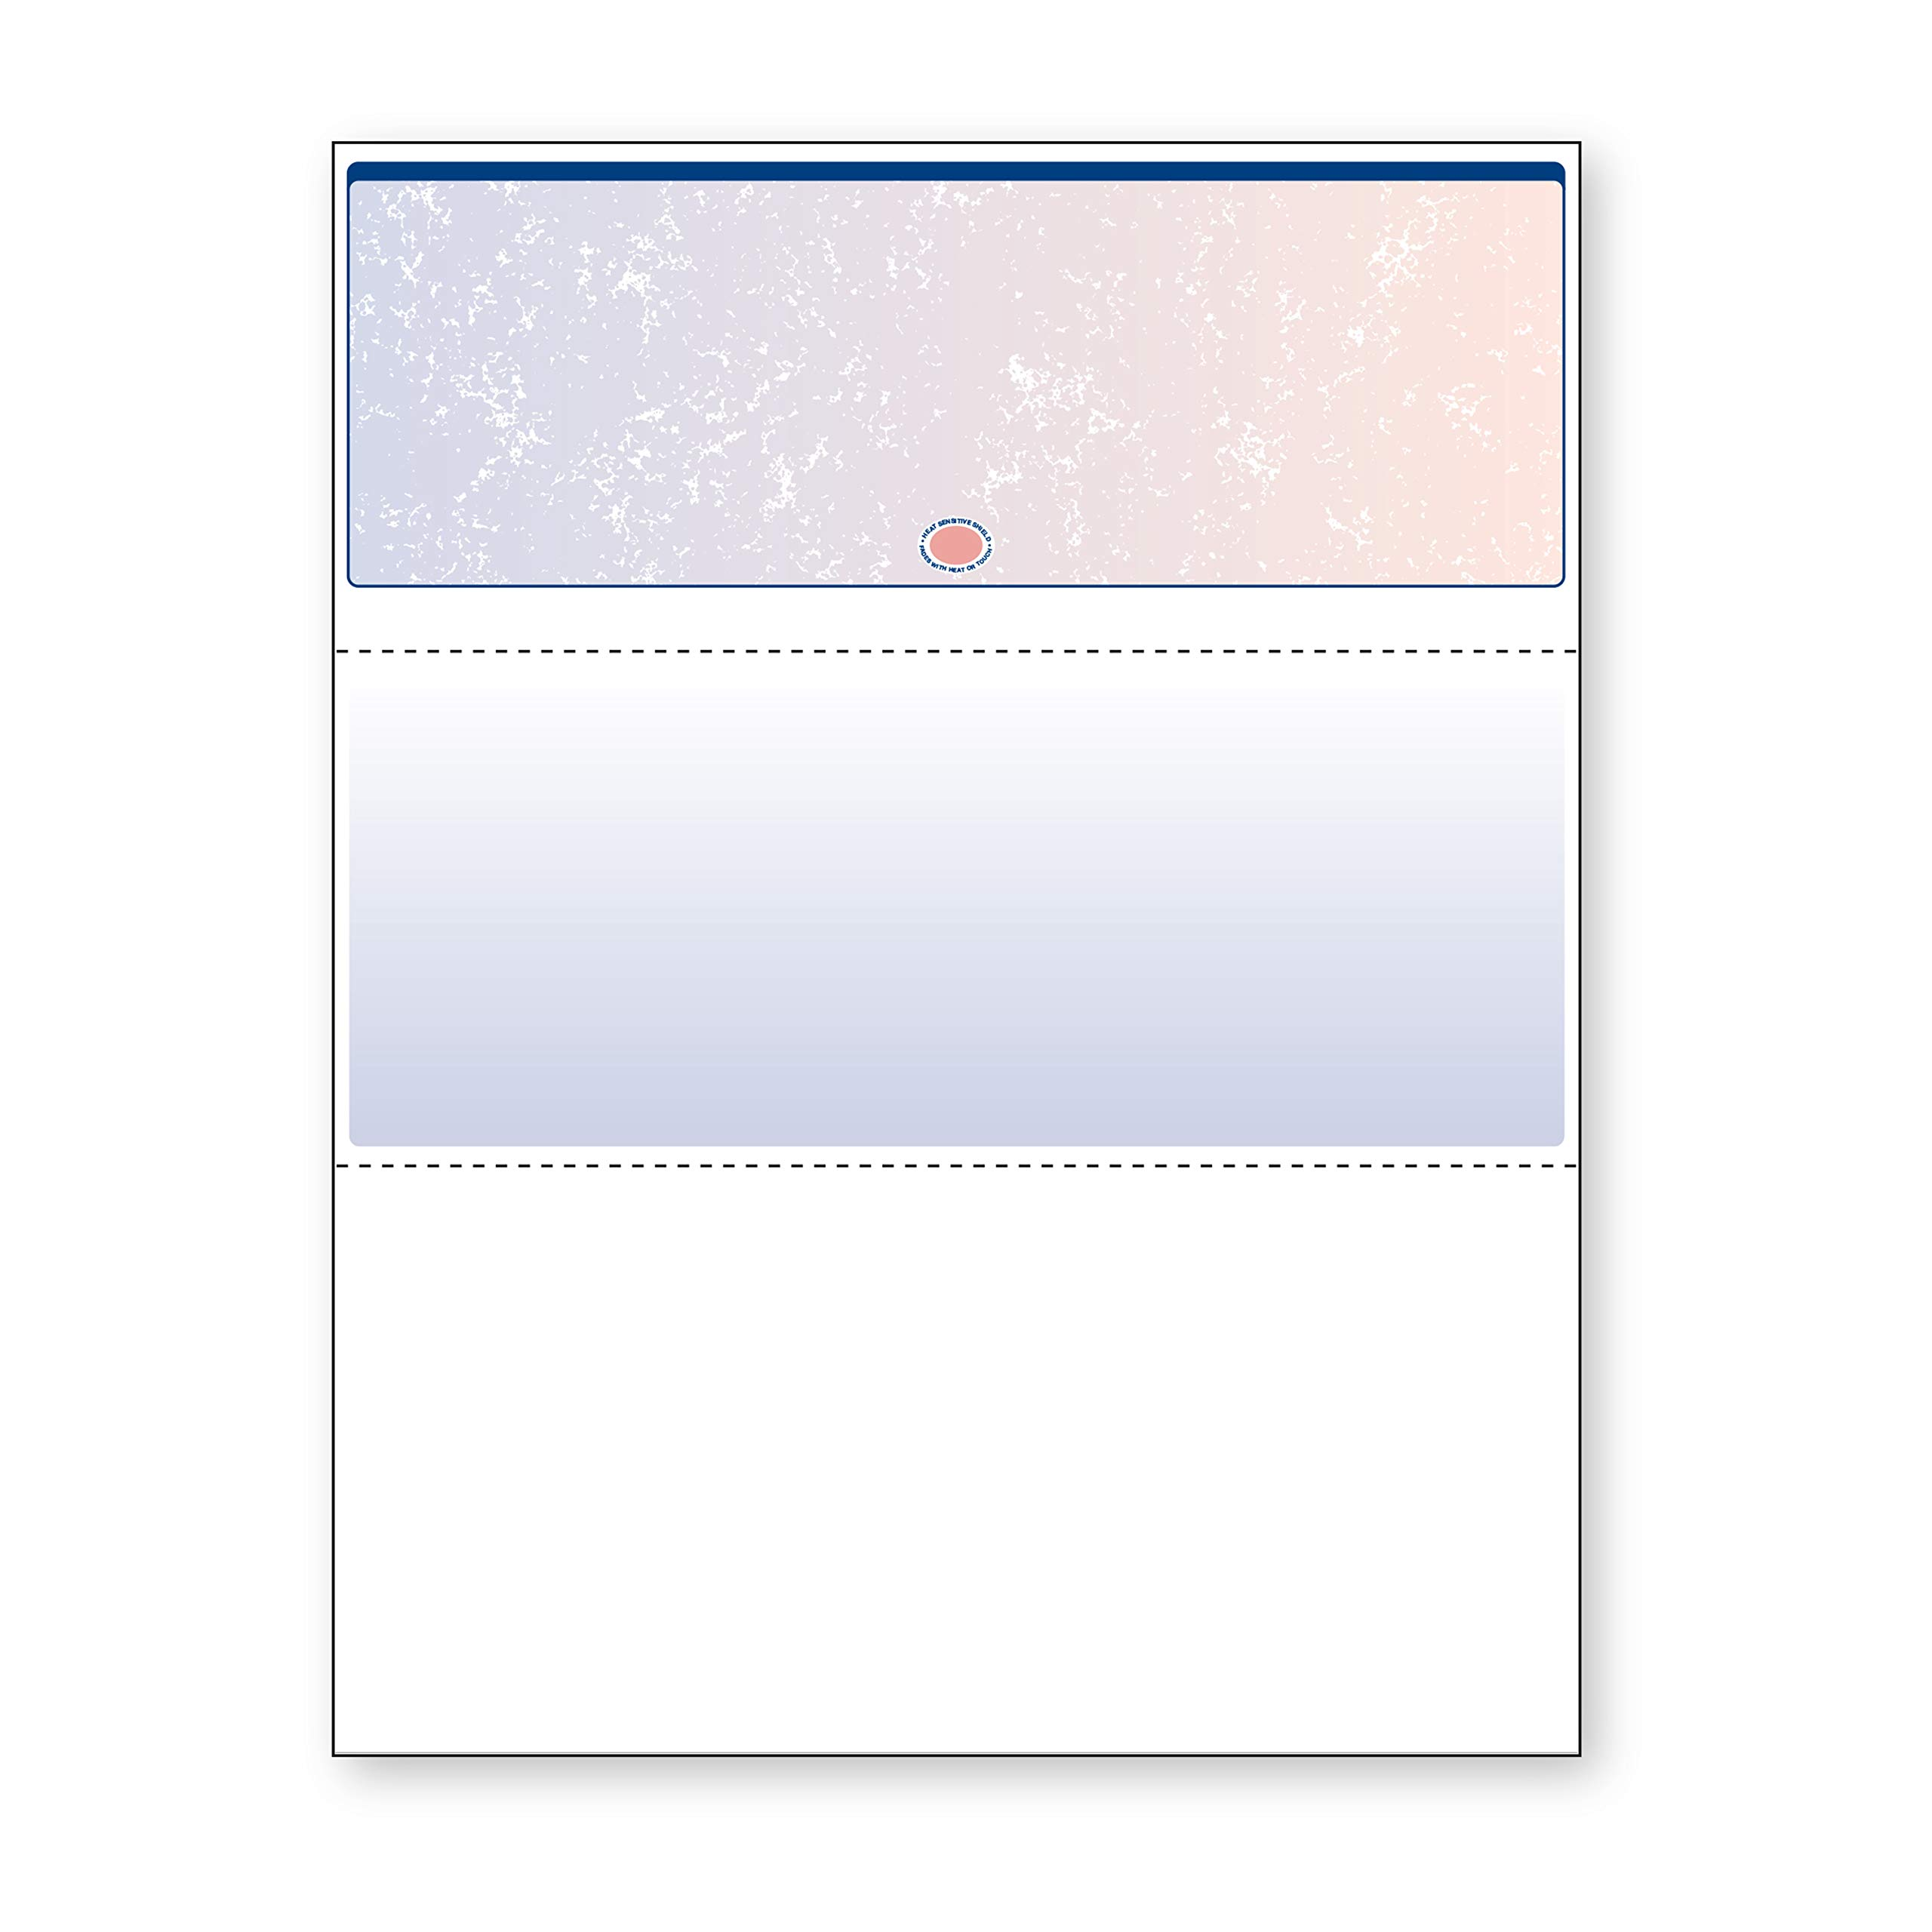 DocuGard Blue/Red Prismatic Top Check, 8.5 x 11 Inches, 24 lb, 500 Sheets, 1 Check Per Sheet (04532)